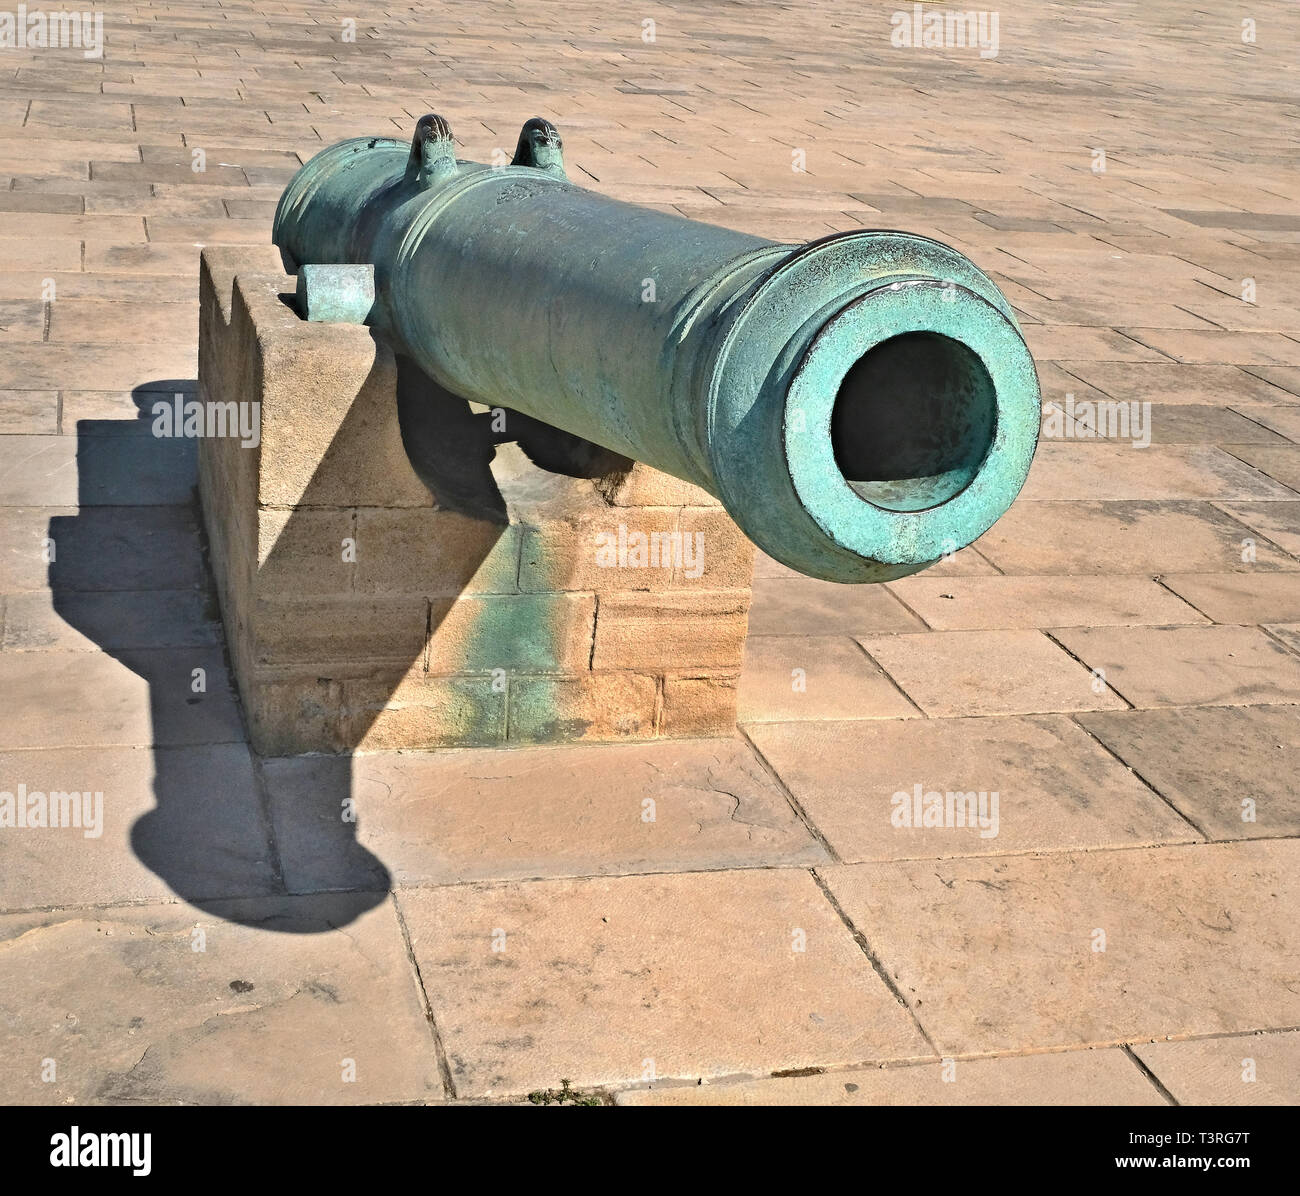 Old artillery gun. The gun for the cores, covered with patina. Located at the royal palace in Morocco - Stock Image